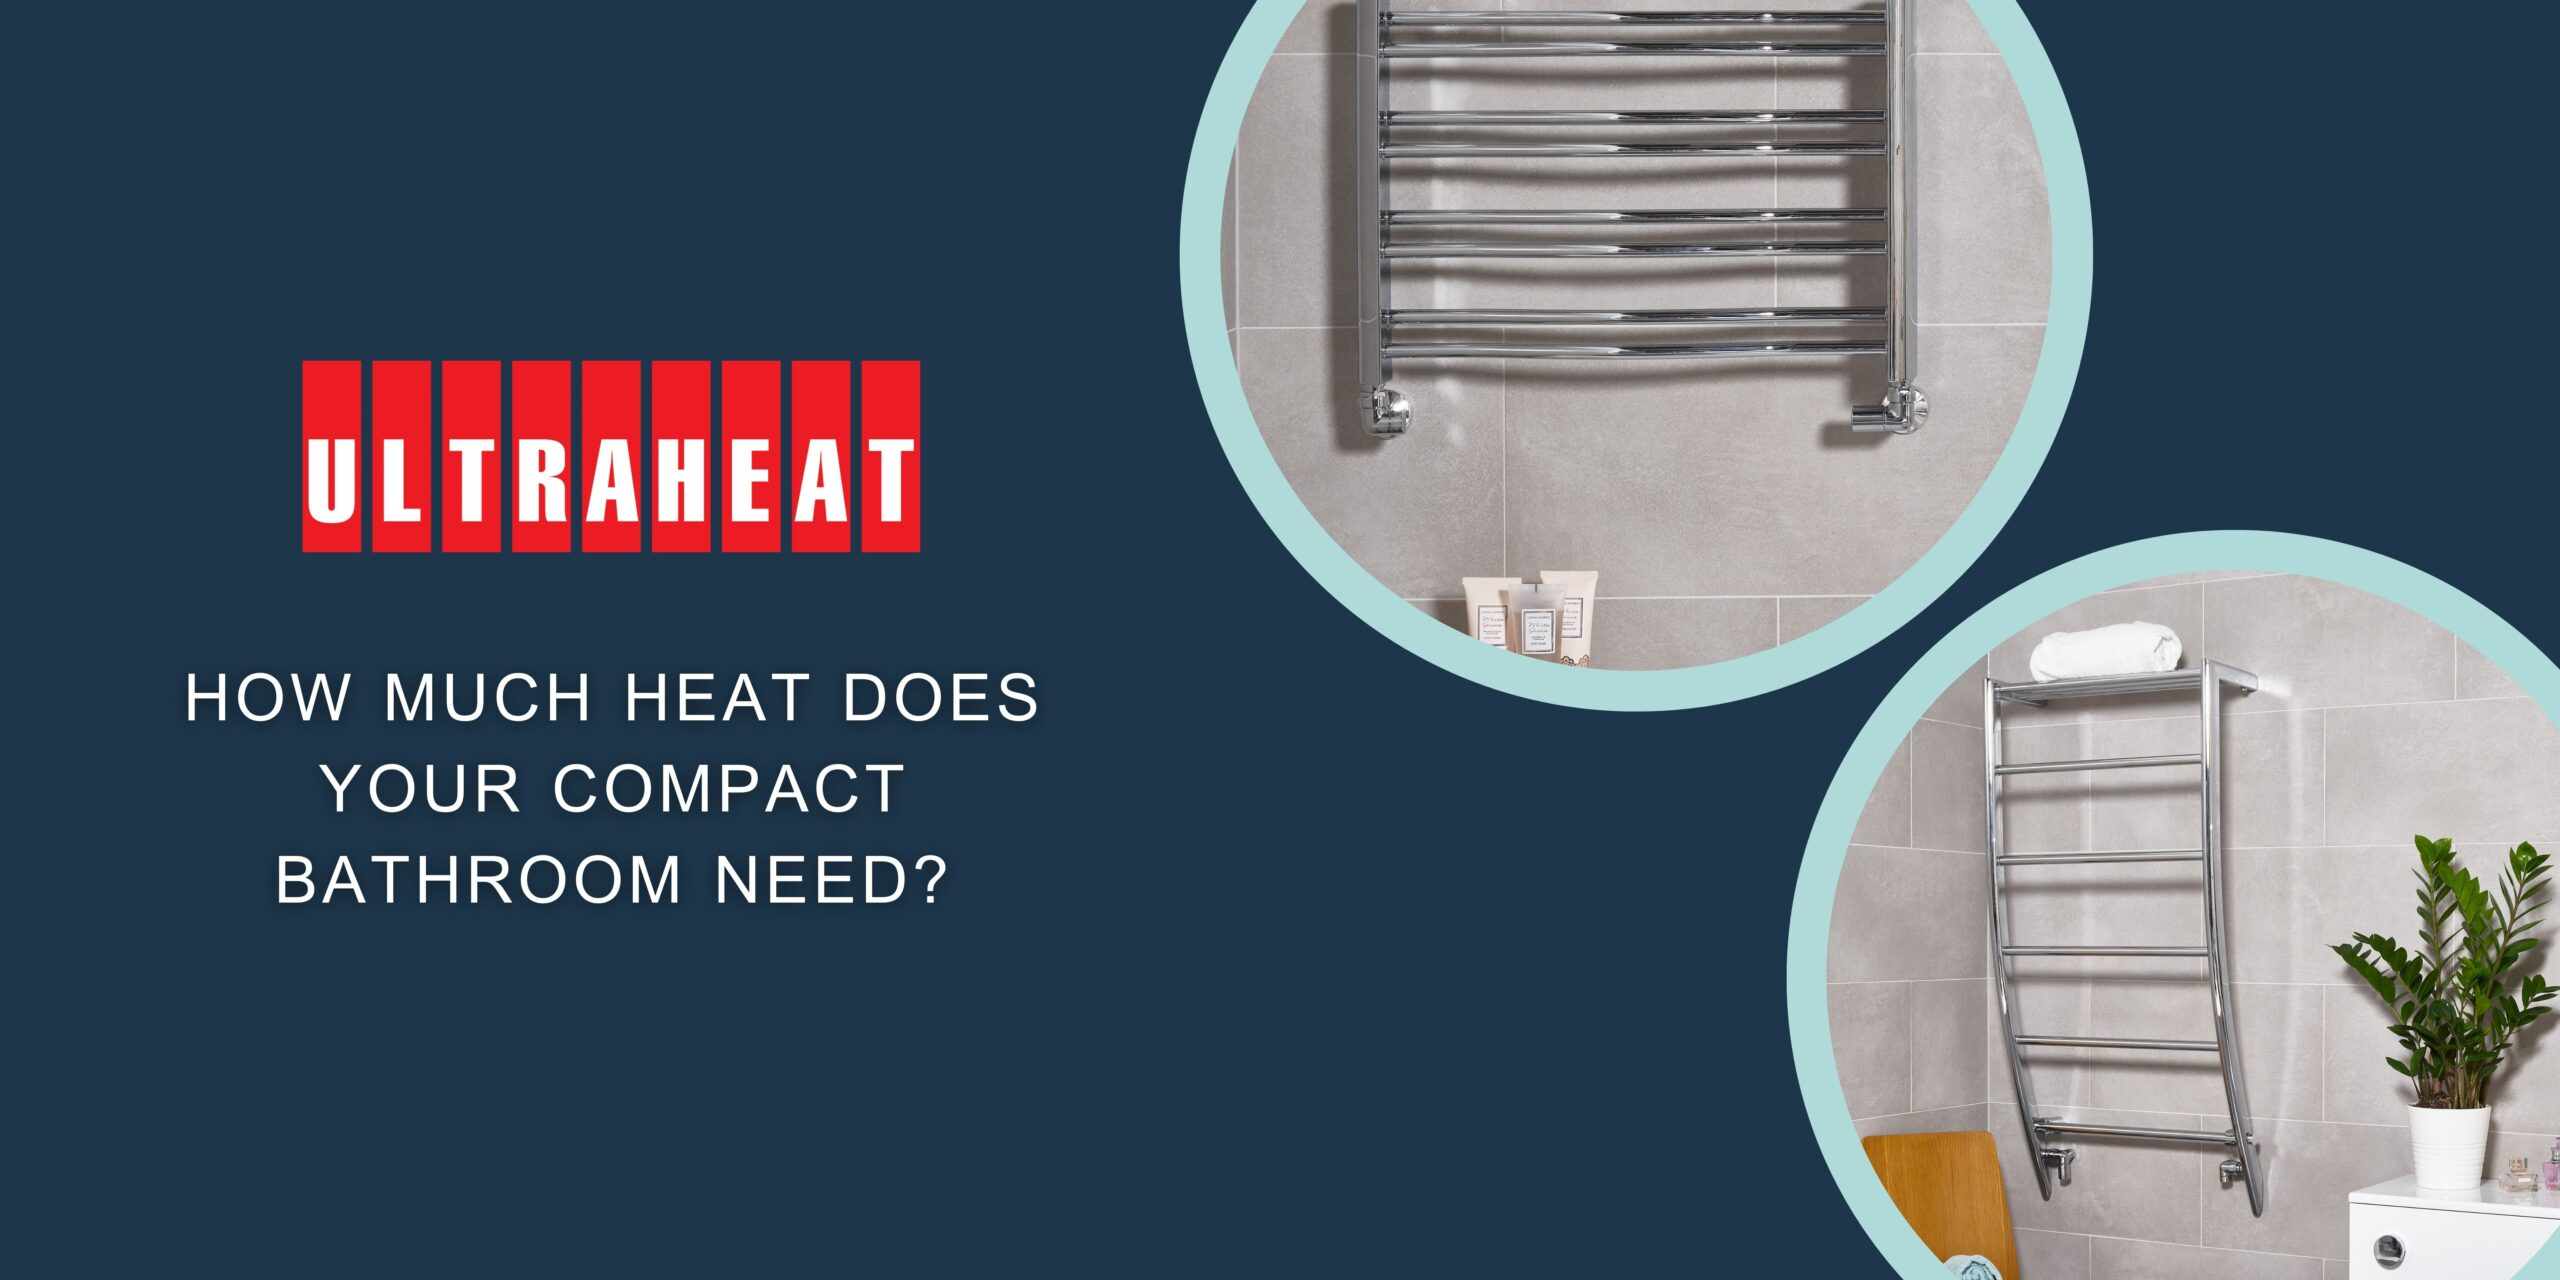 How much heat does your compact bathroom need?